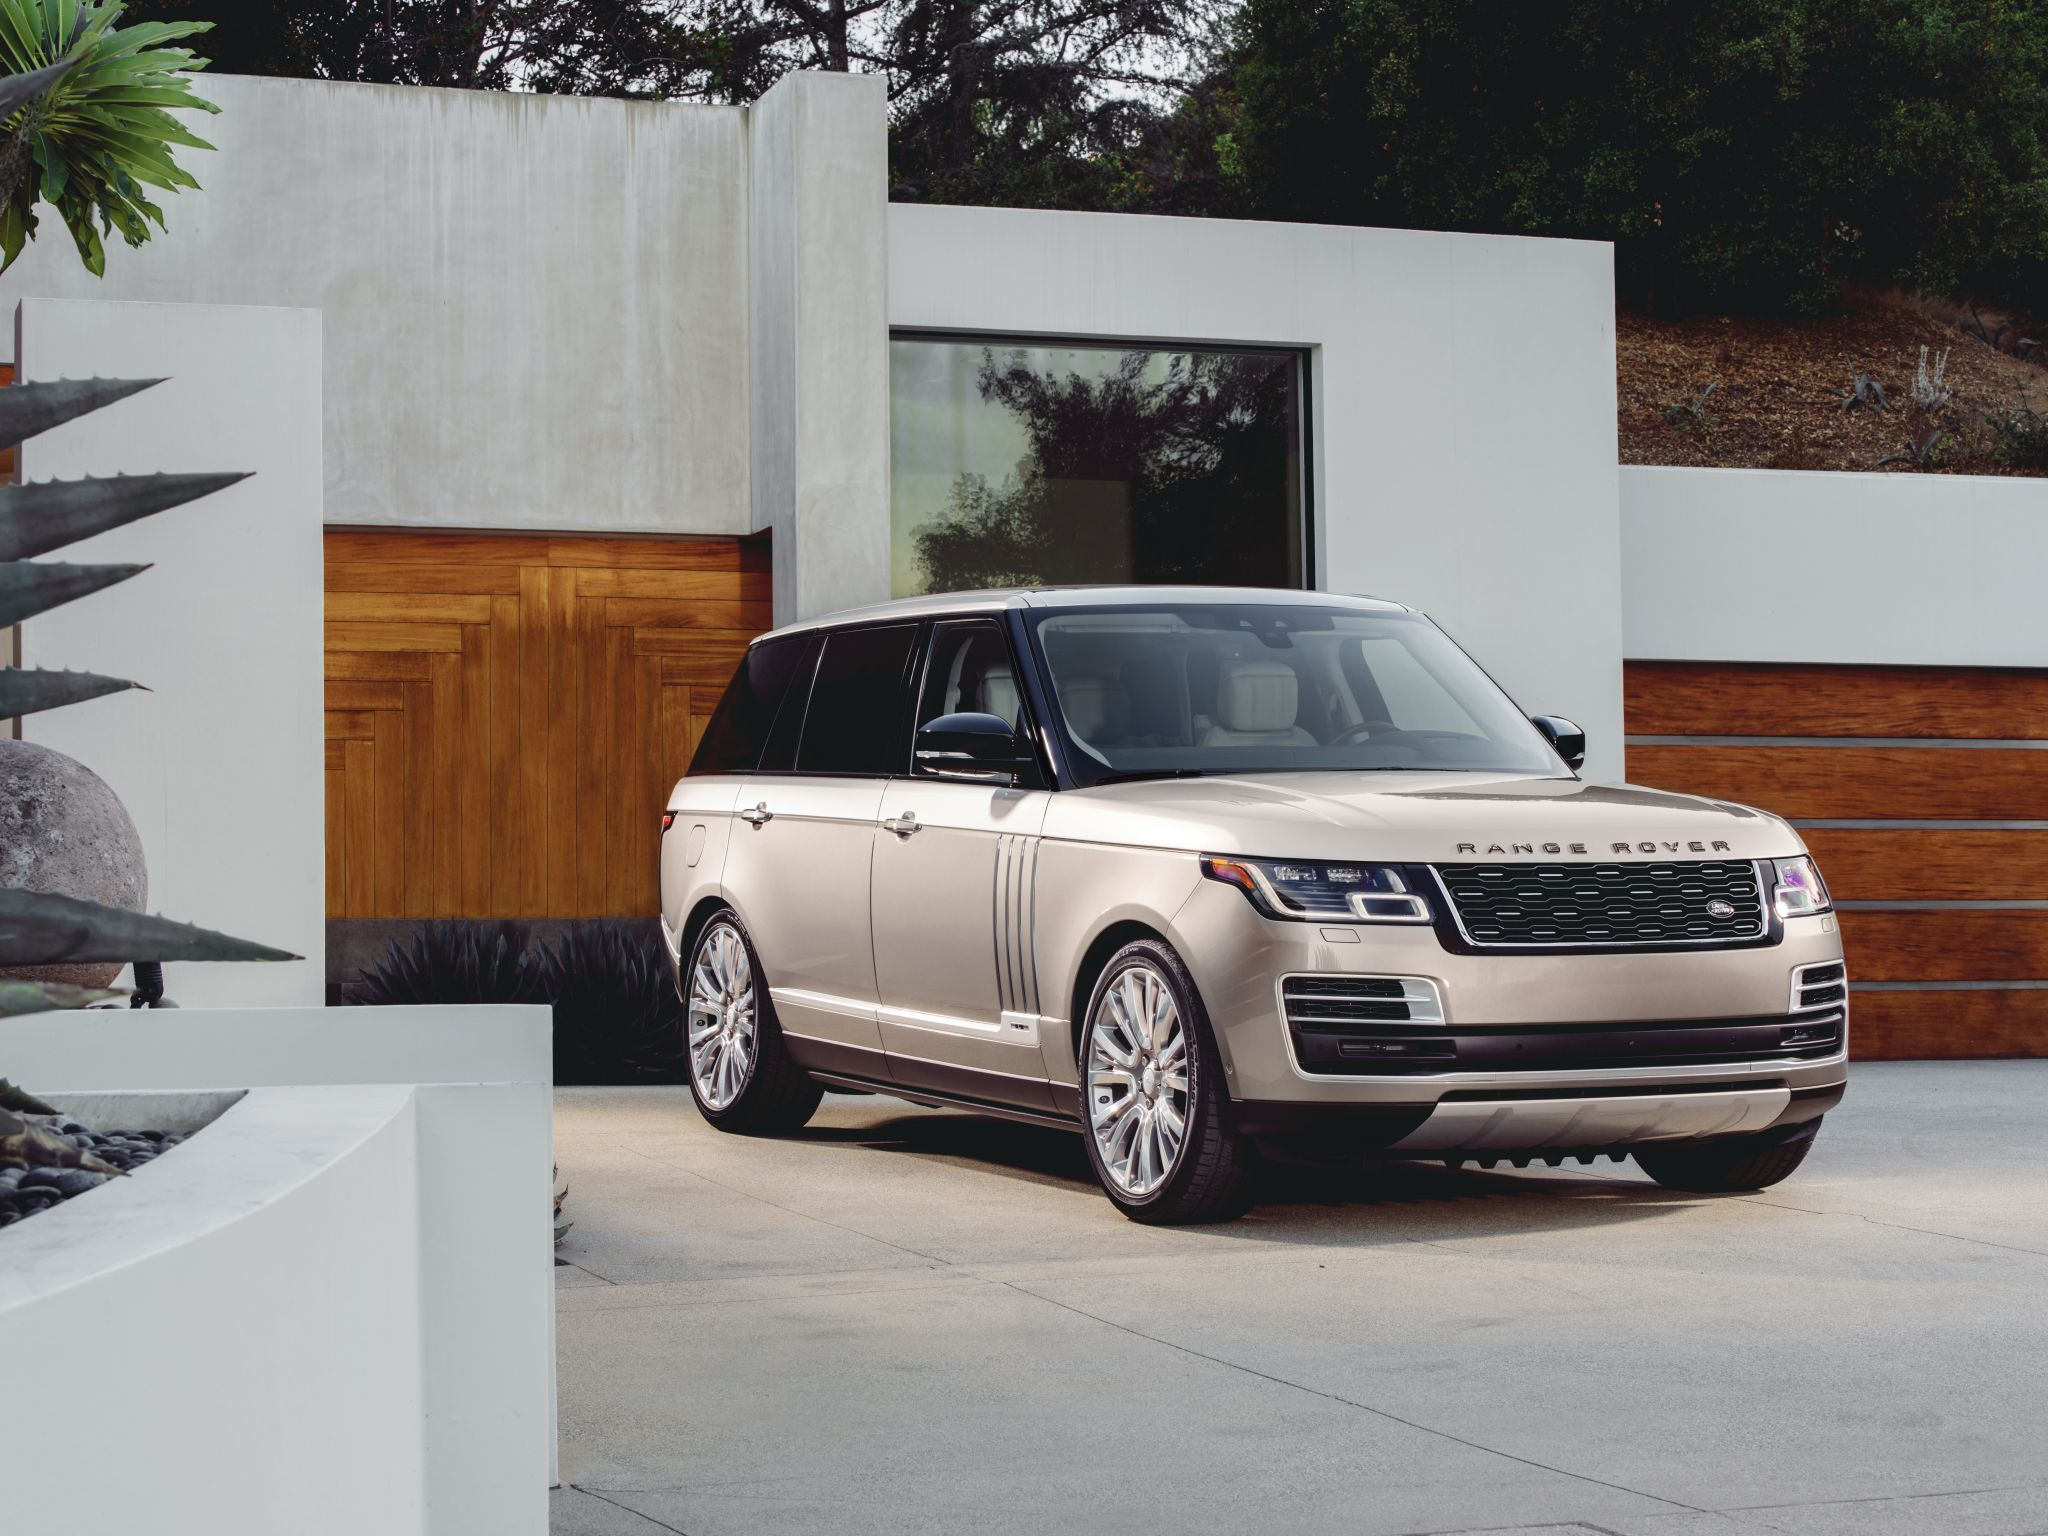 Land Rover reveals its latest model: Range Rover SVAutoiography